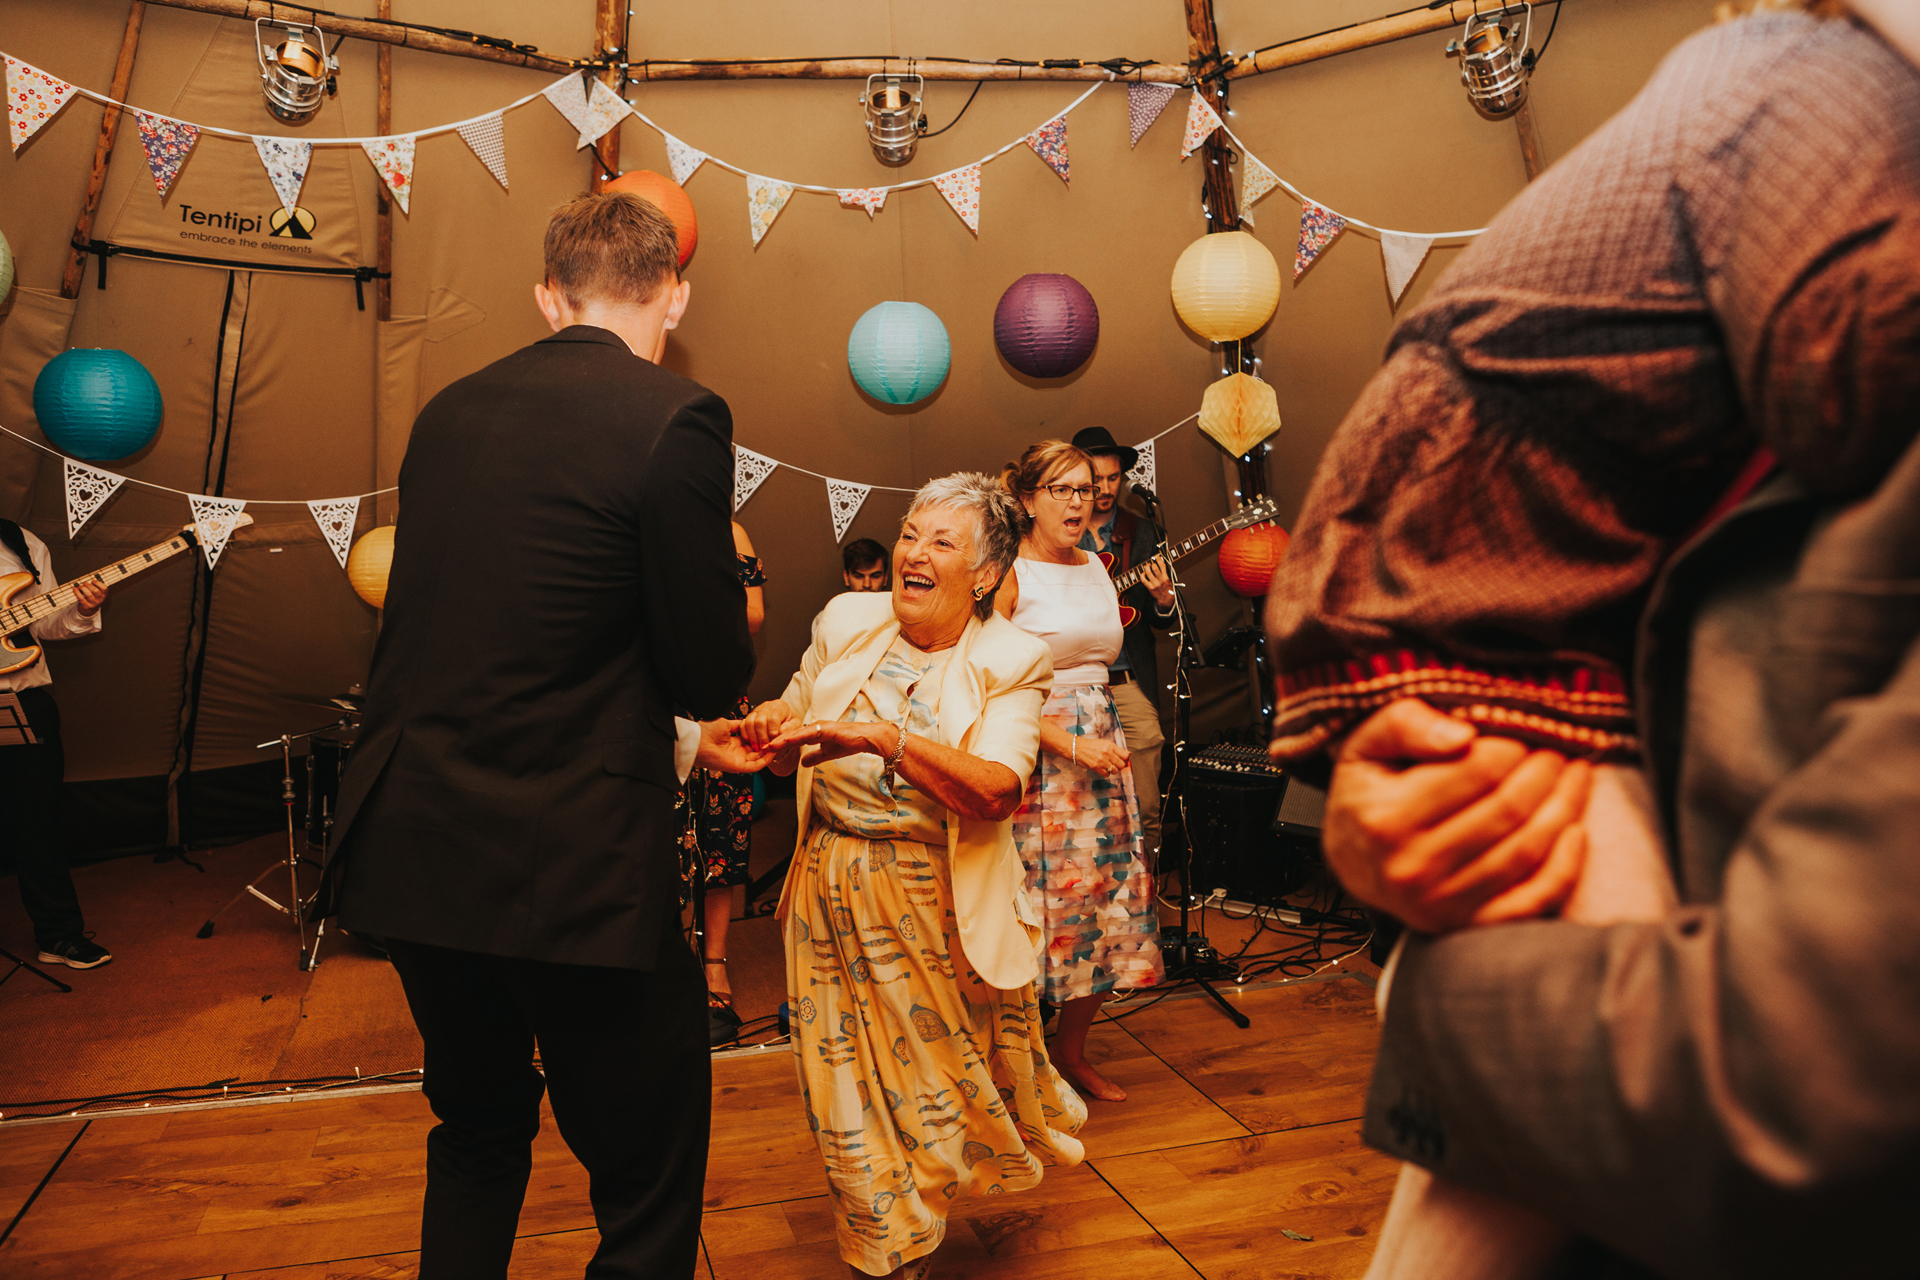 Guests dancing in tipi.